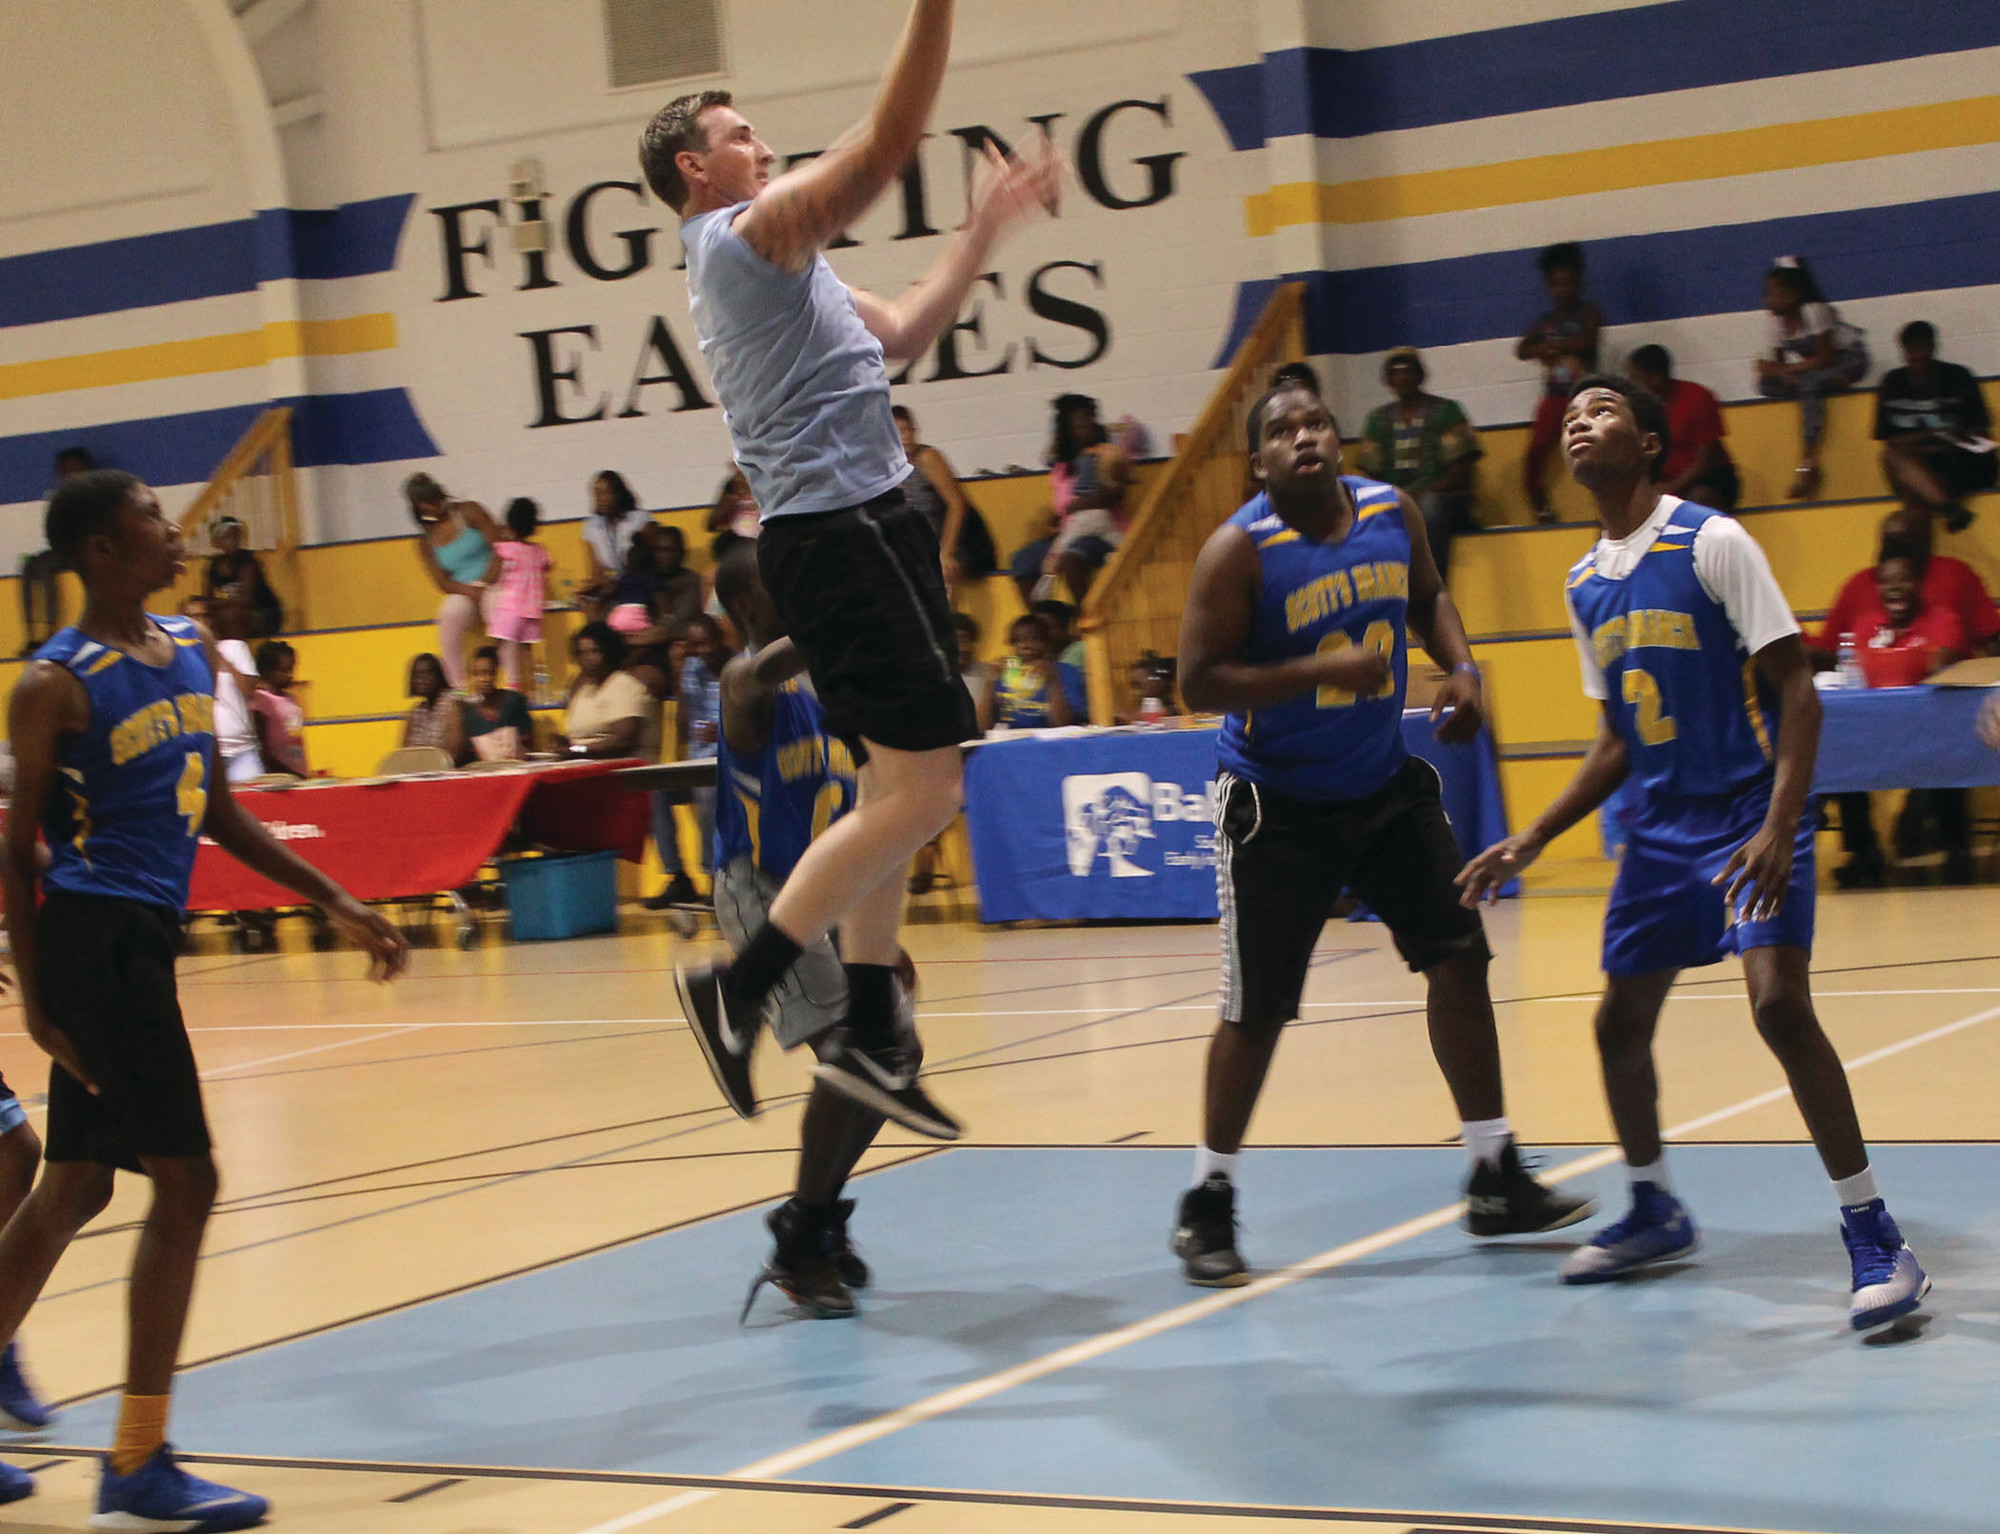 Athletes from Scott's Branch High School look on as CCSO Deputy Shane Ballard takes it to the hoop during the game at the event.